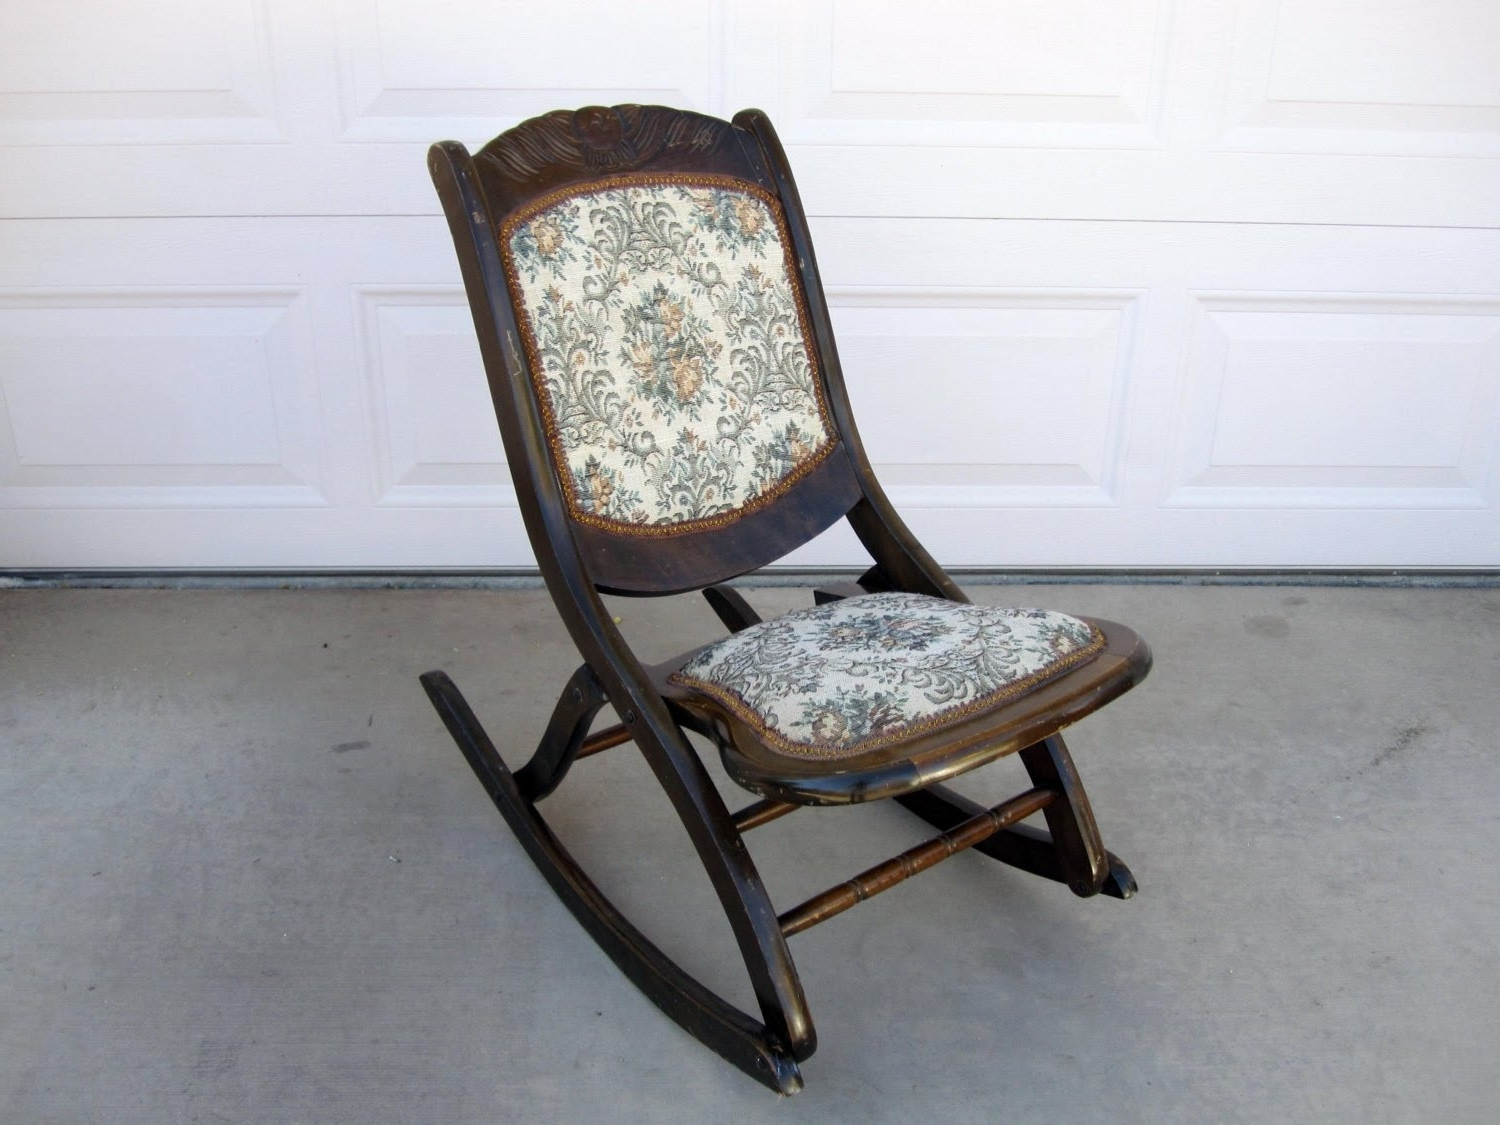 Ergonomic Wooden Rocking Chair (View 9 of 15)